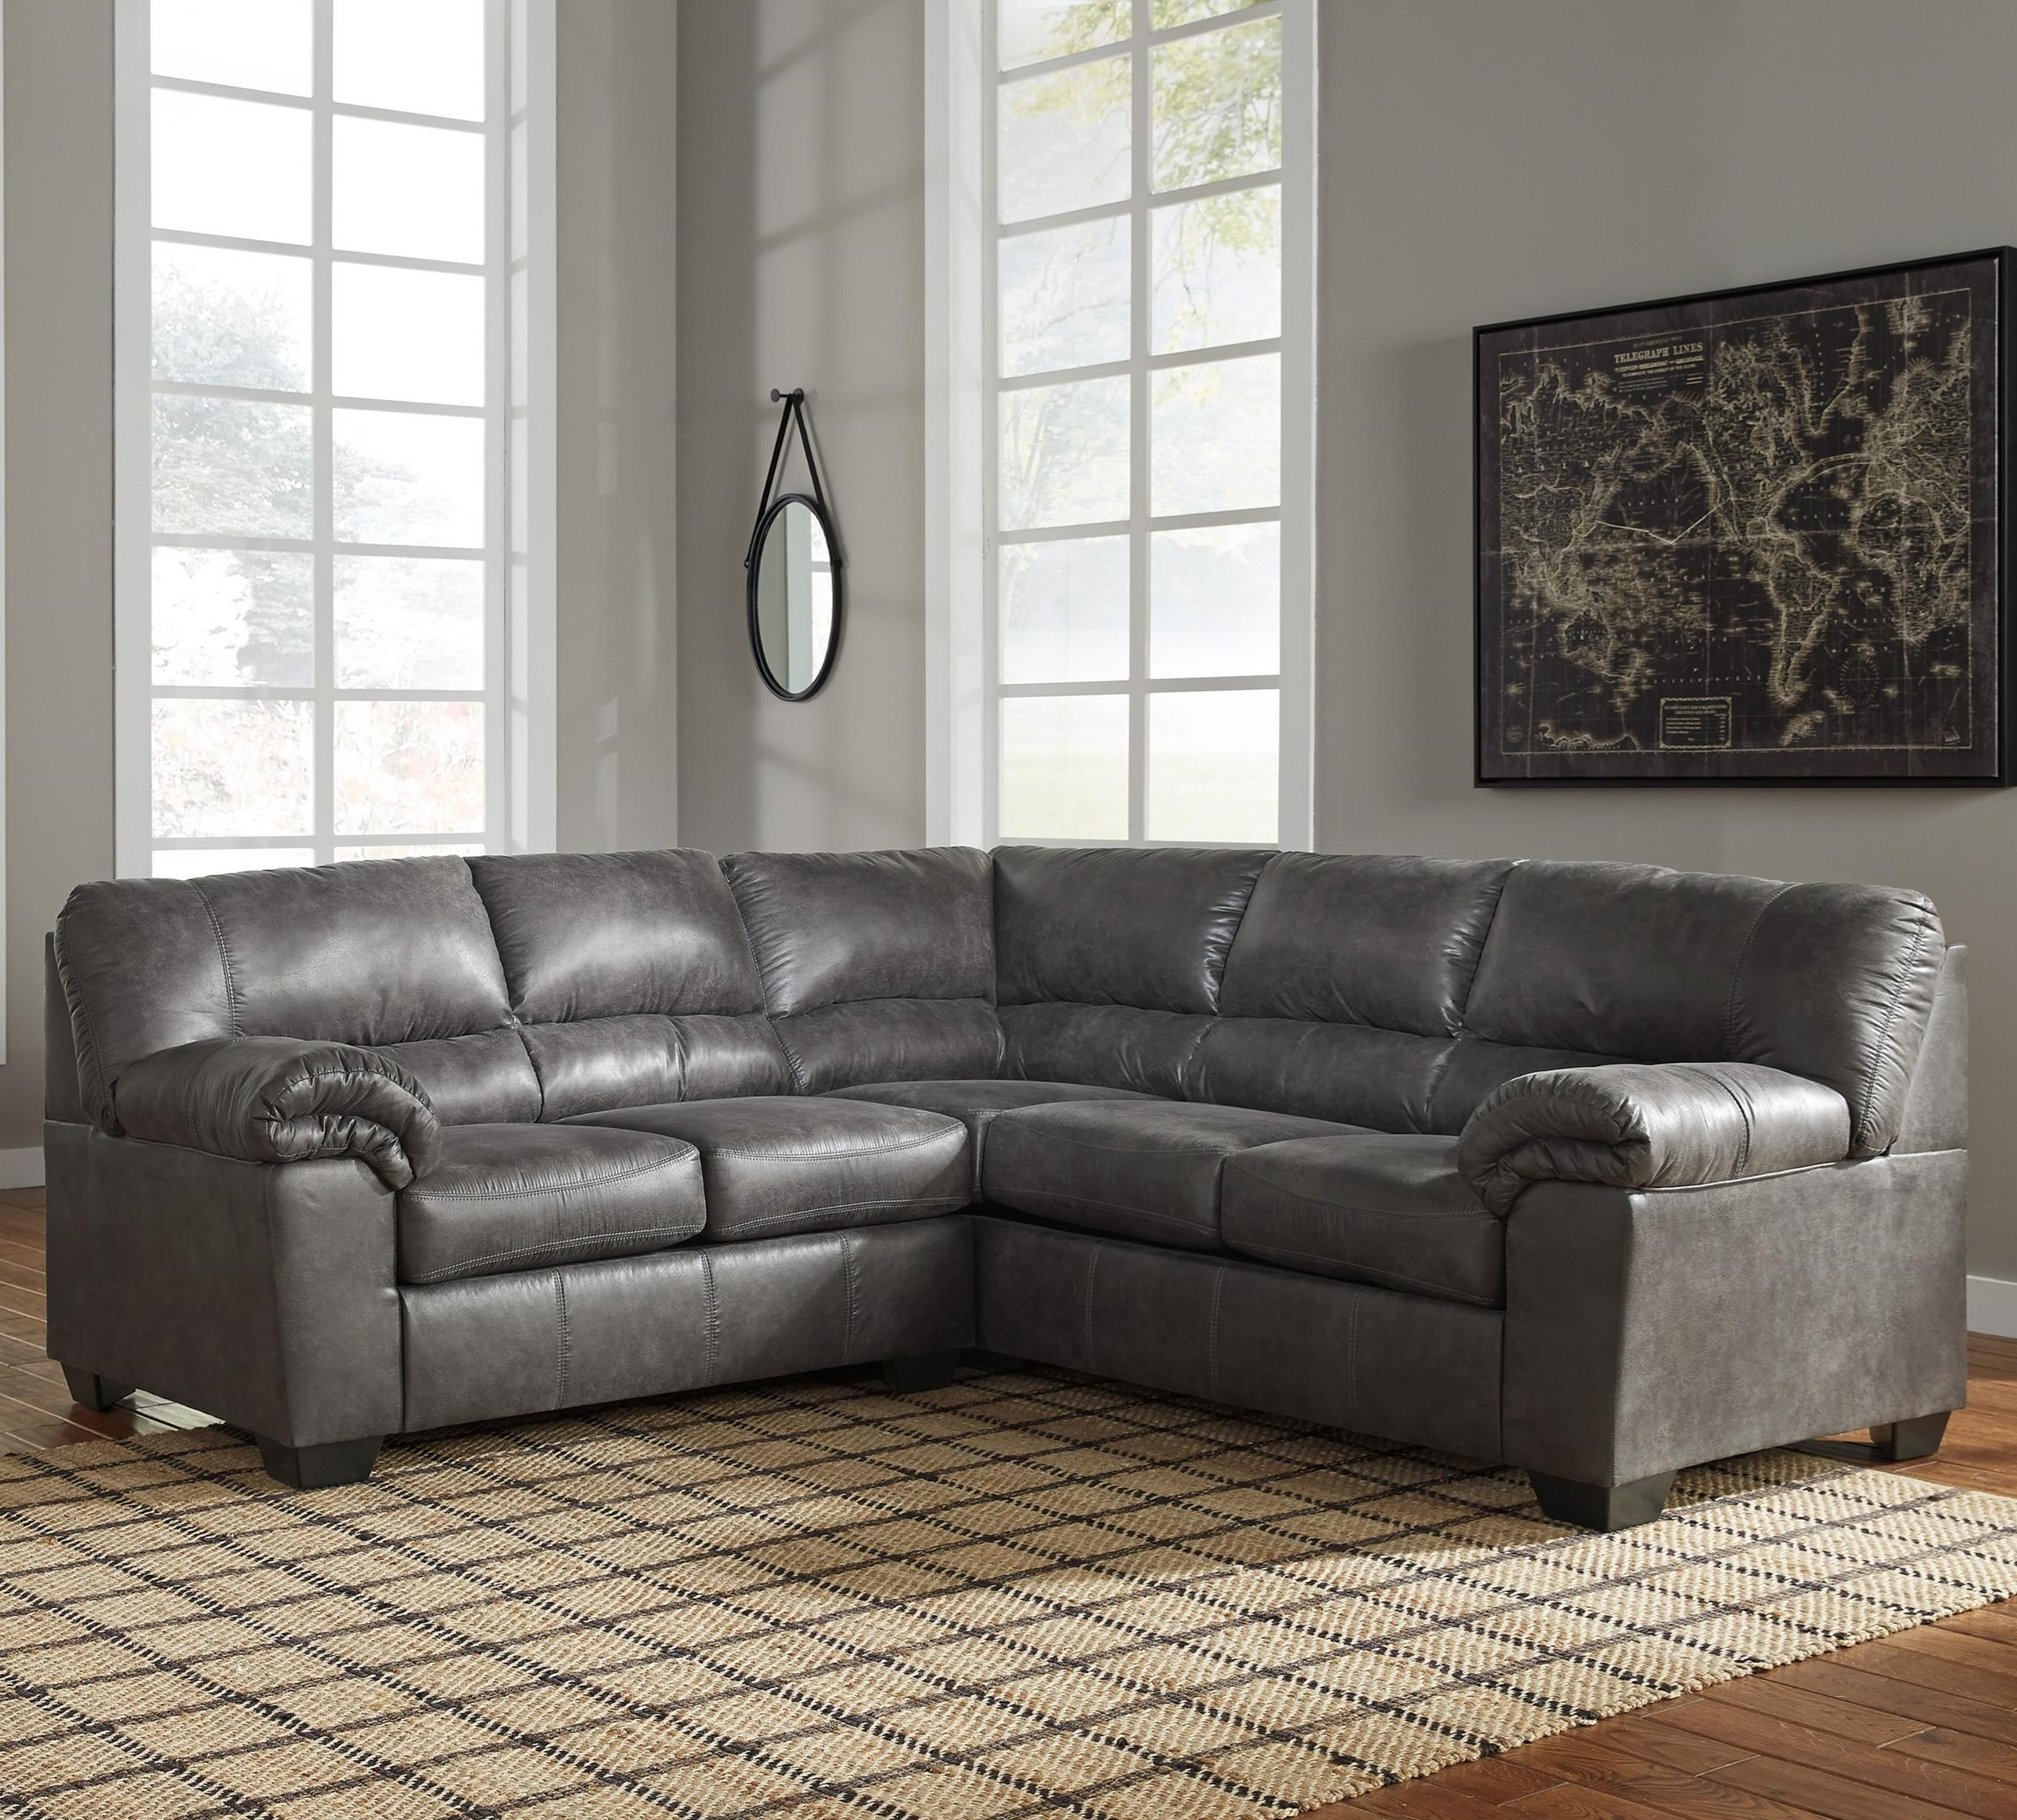 Signature Design By Ashley Bladen 2 Piece Faux Leather Sectional Del Sol Furniture Sectional